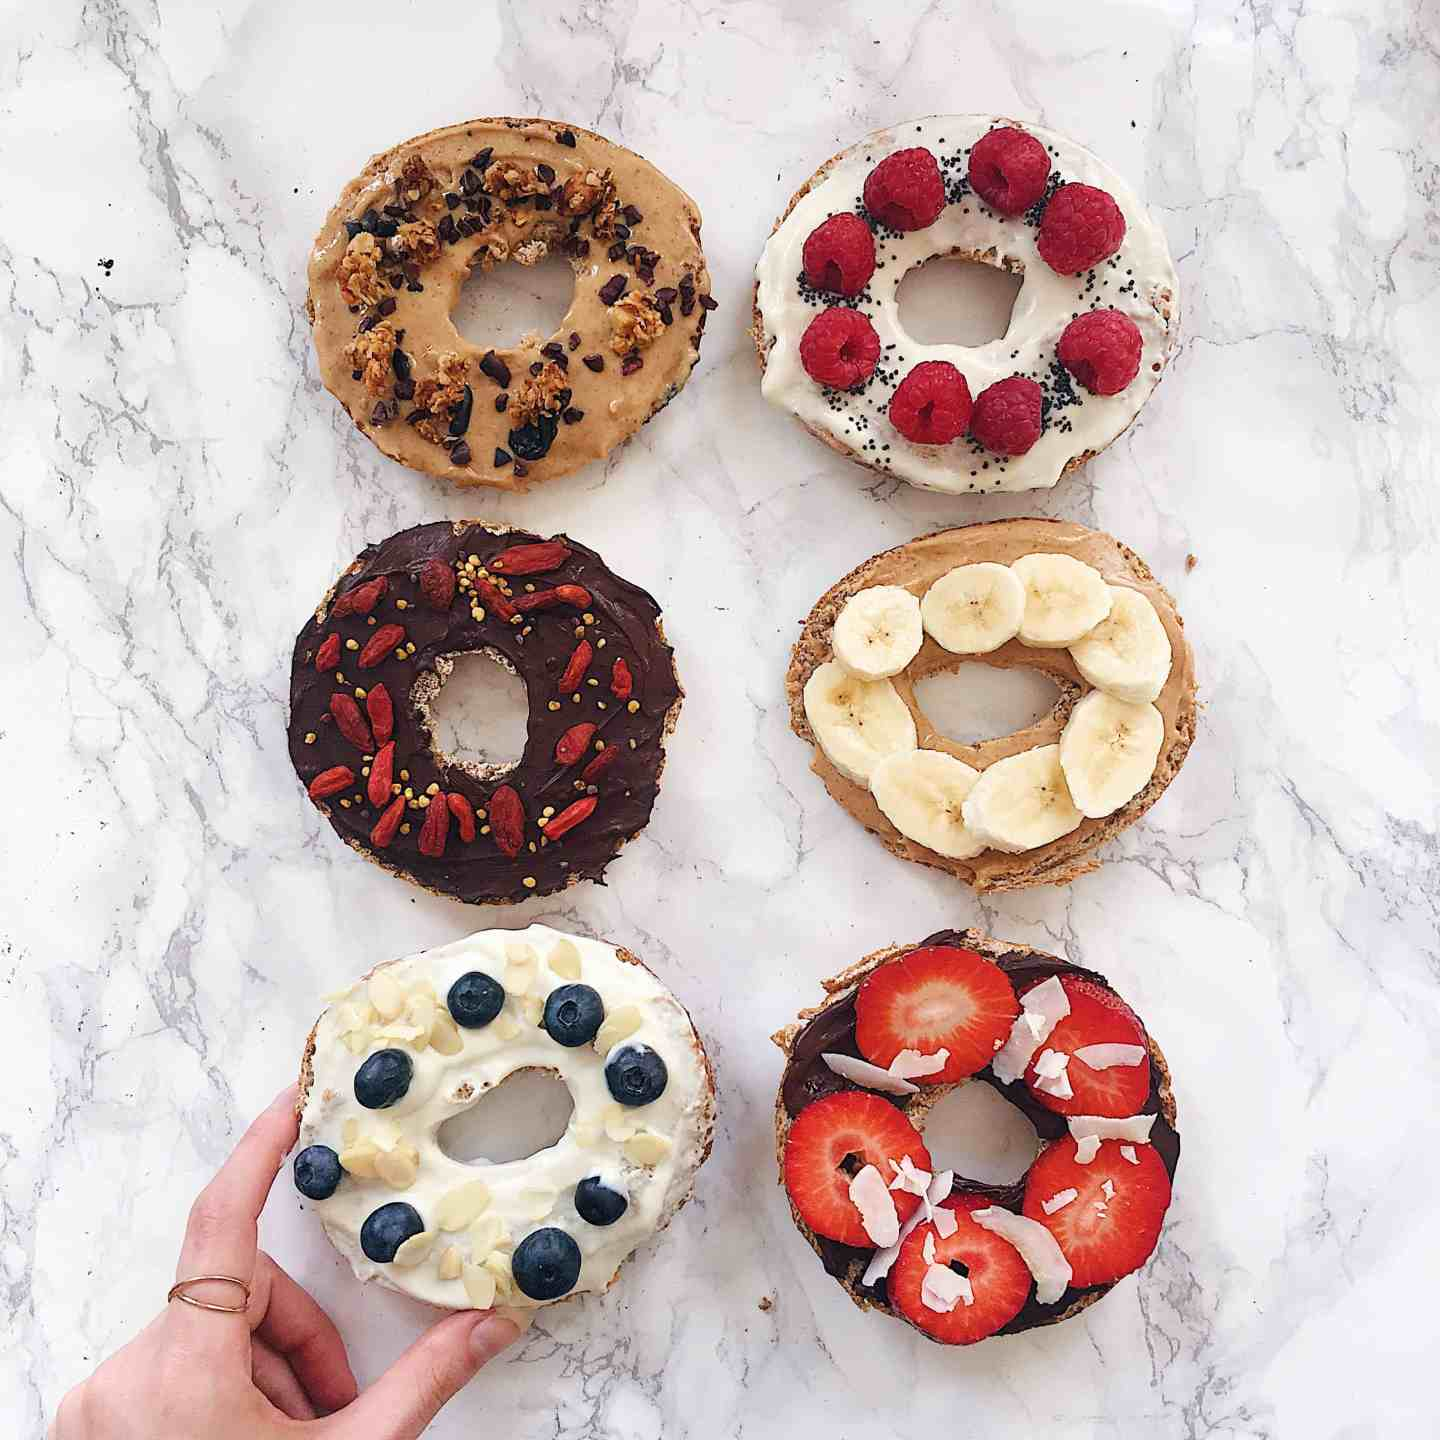 Healthy Bagel Toppings